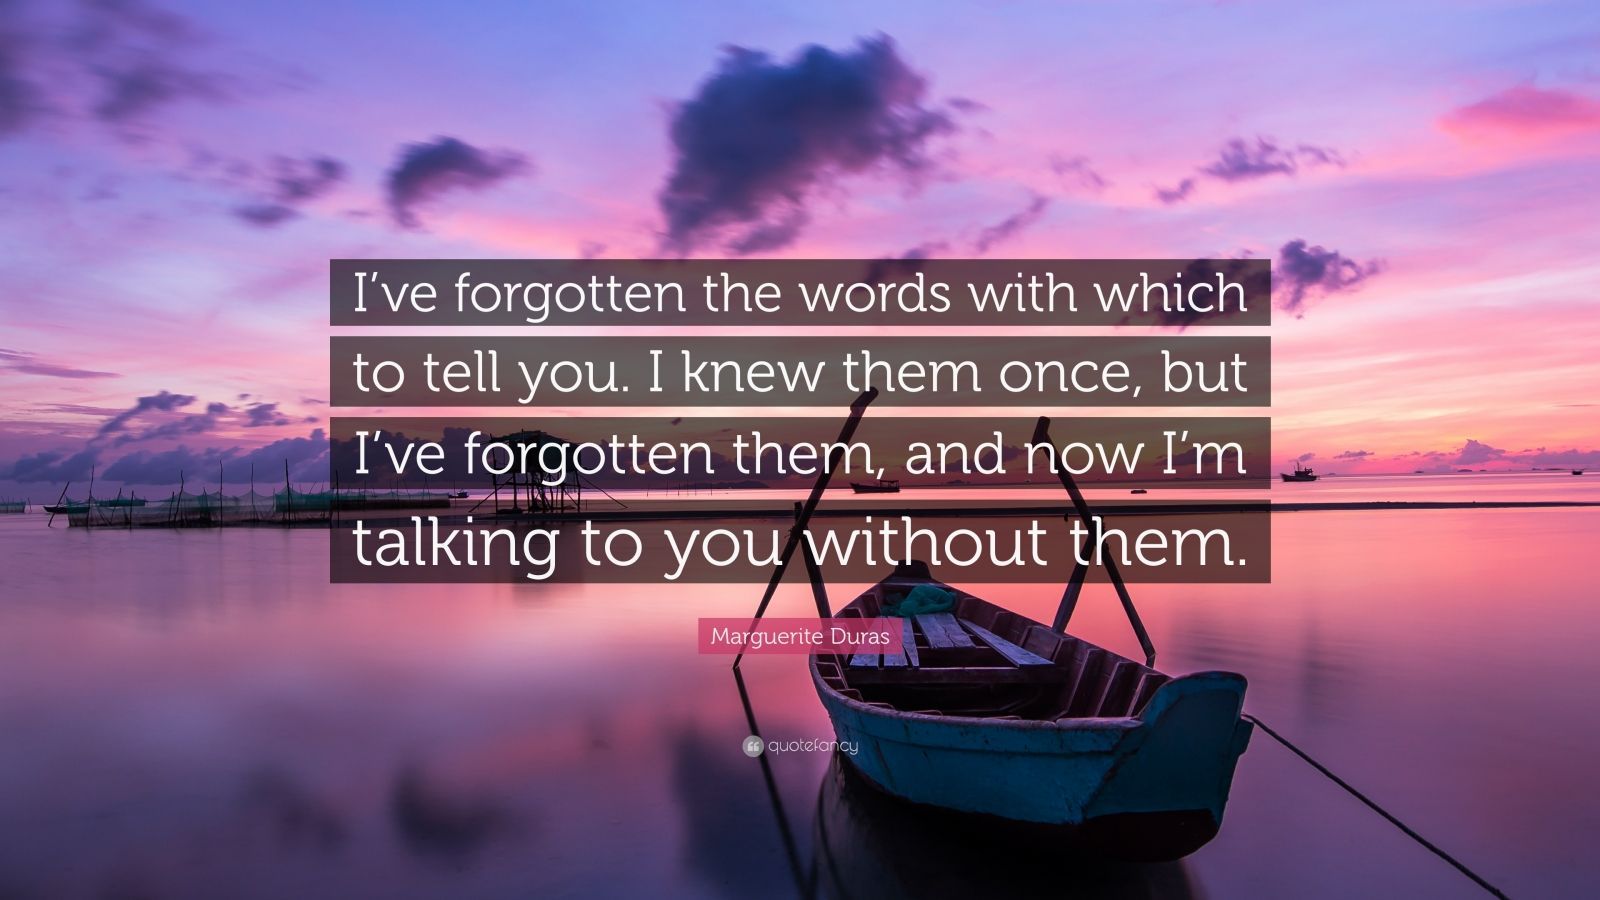 """Marguerite Duras Quote: """"I've forgotten the words with which to tell you. I knew them once, but I've forgotten them, and now I'm talking to you without them."""""""